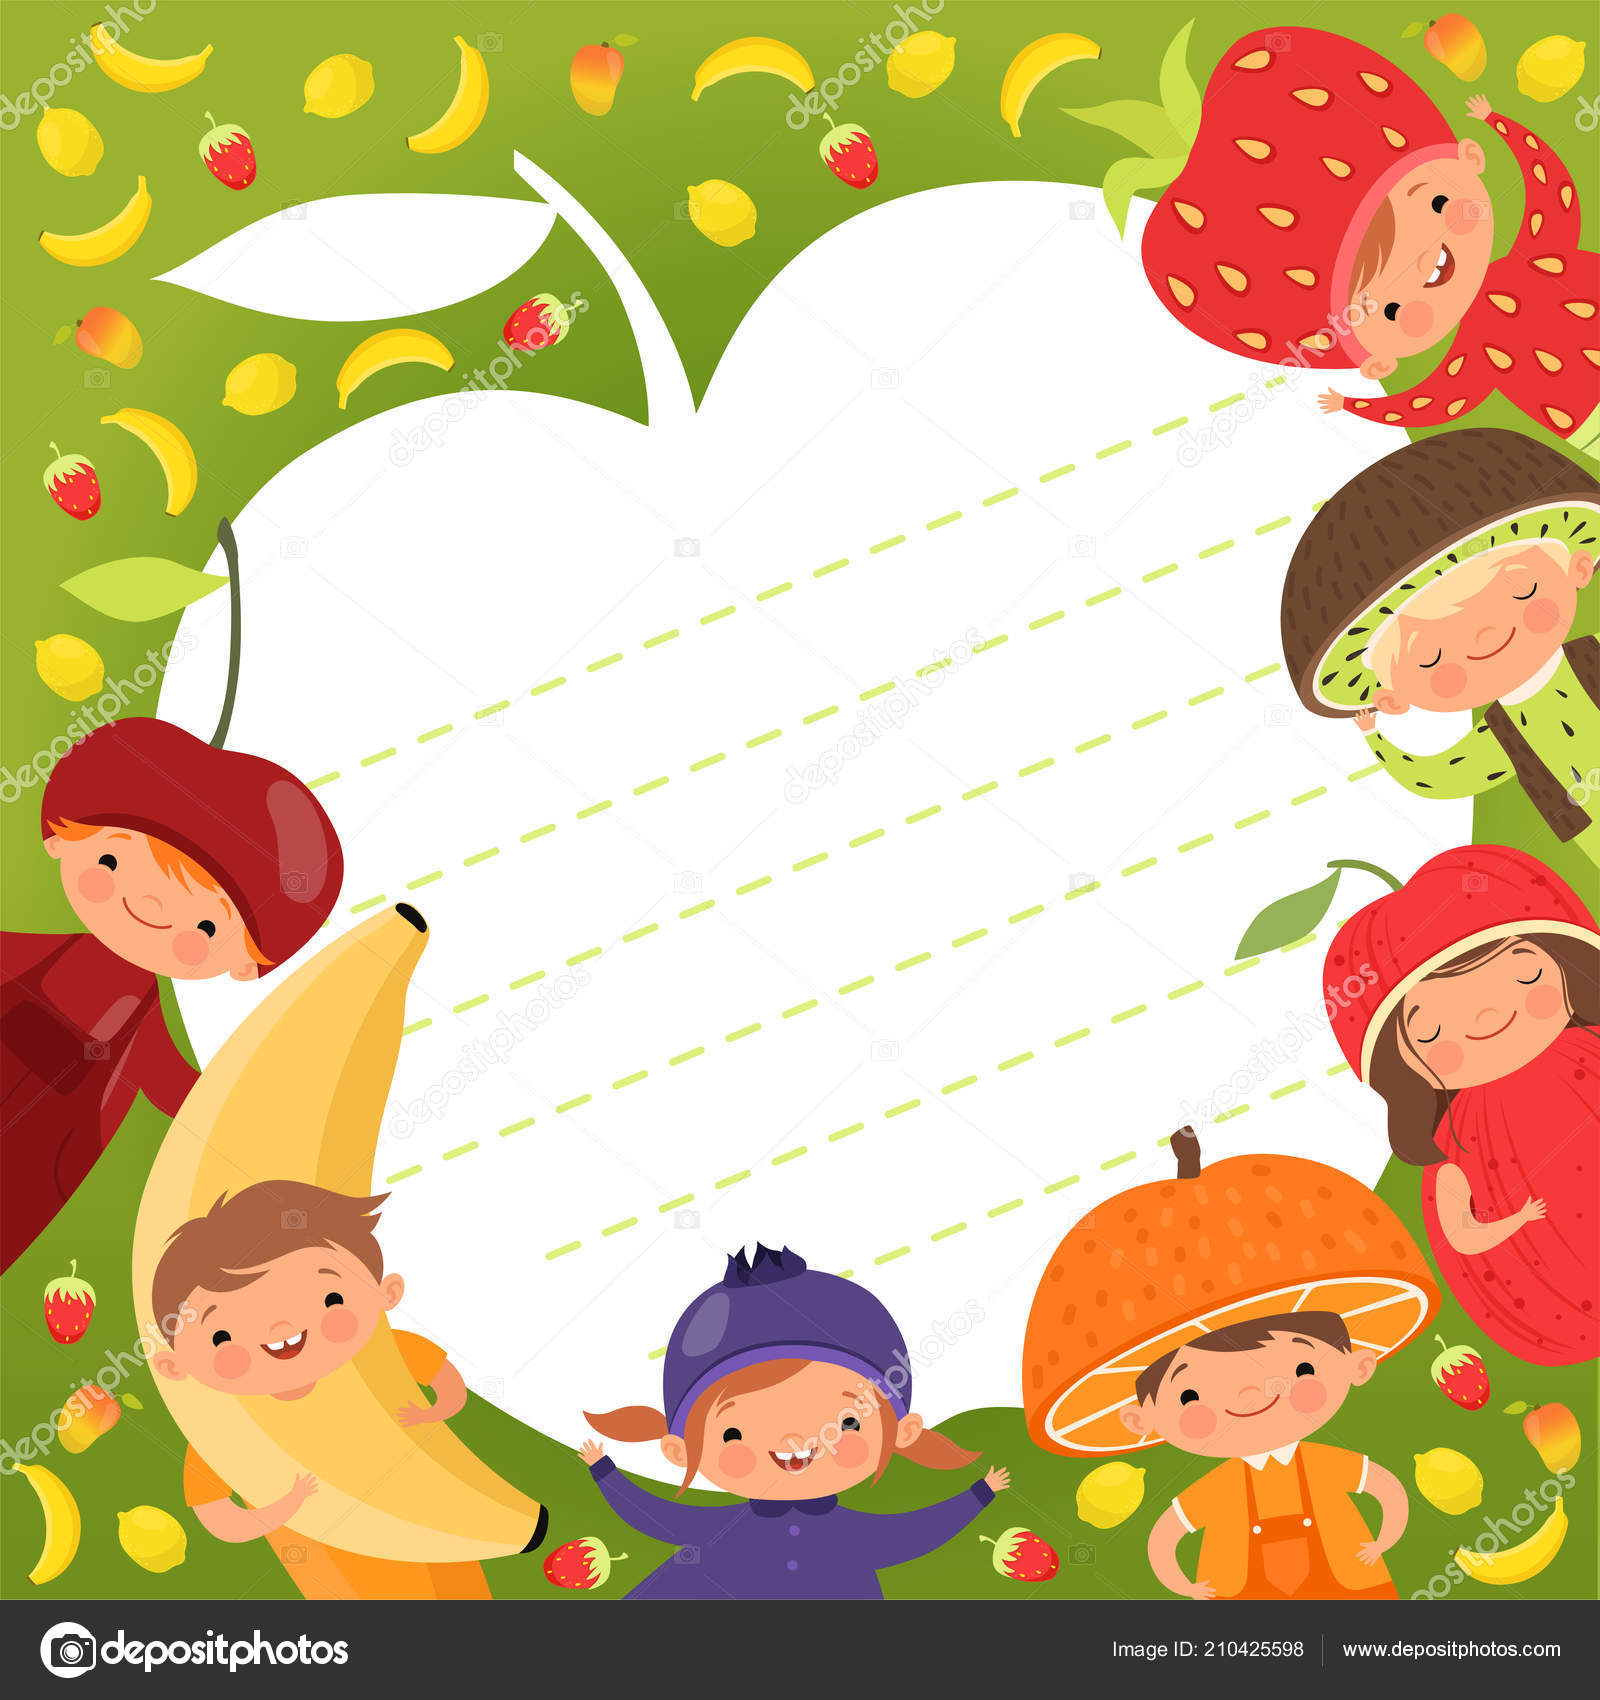 kids menu template colored background with illustrations of happy